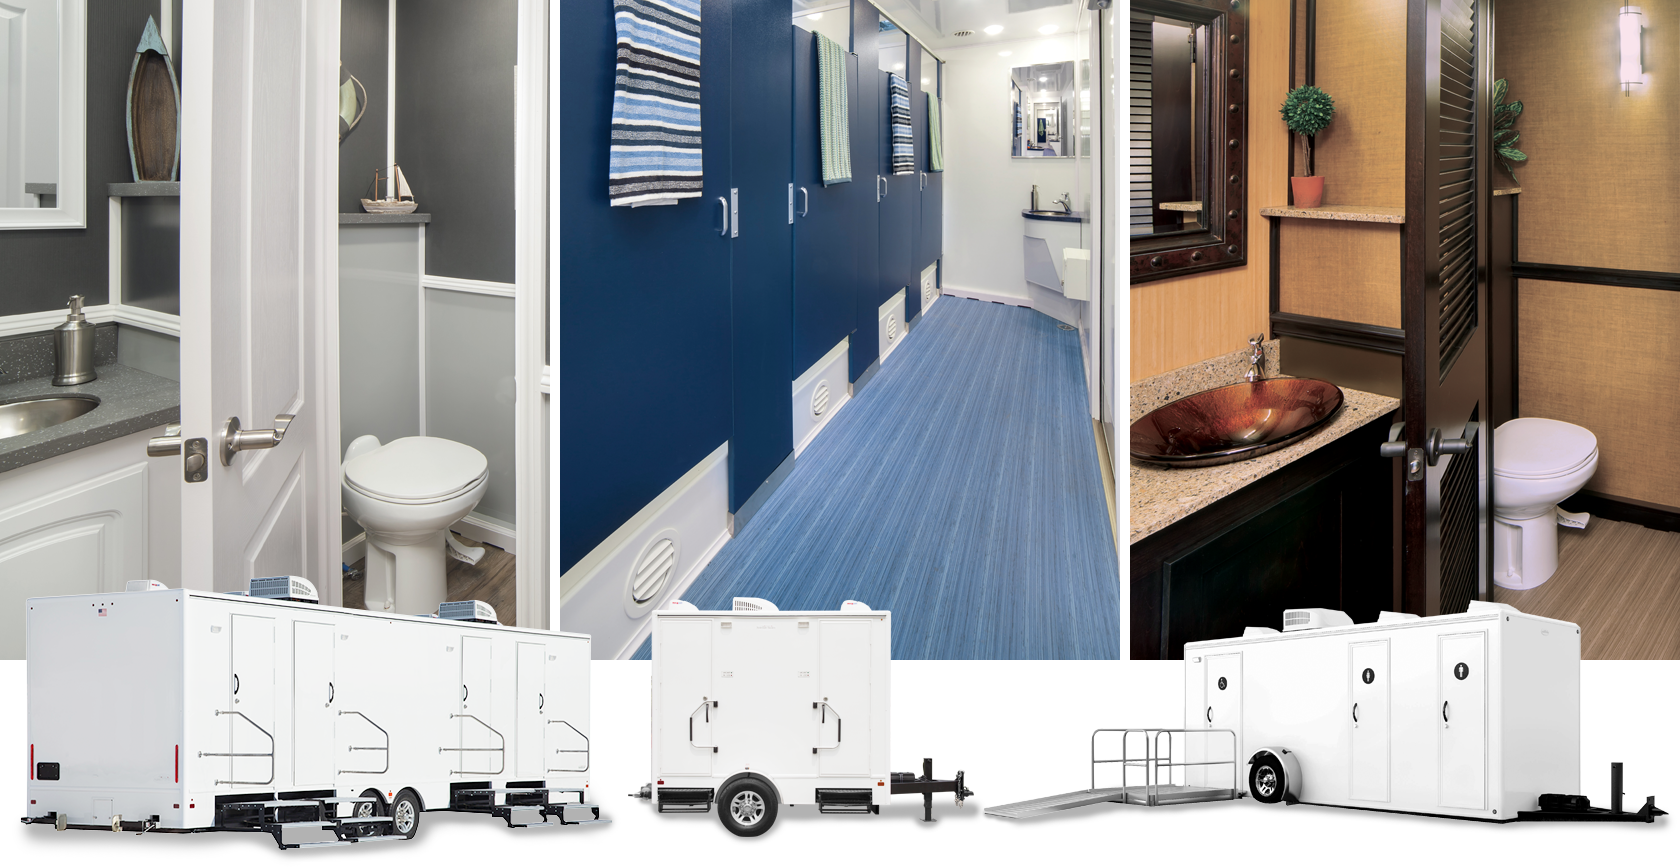 bathroom trailers. Ever Since We Have Introduced Satellite Suites Been Pushing The Envelope To Deliver Best Restroom Trailers On Market. Bathroom